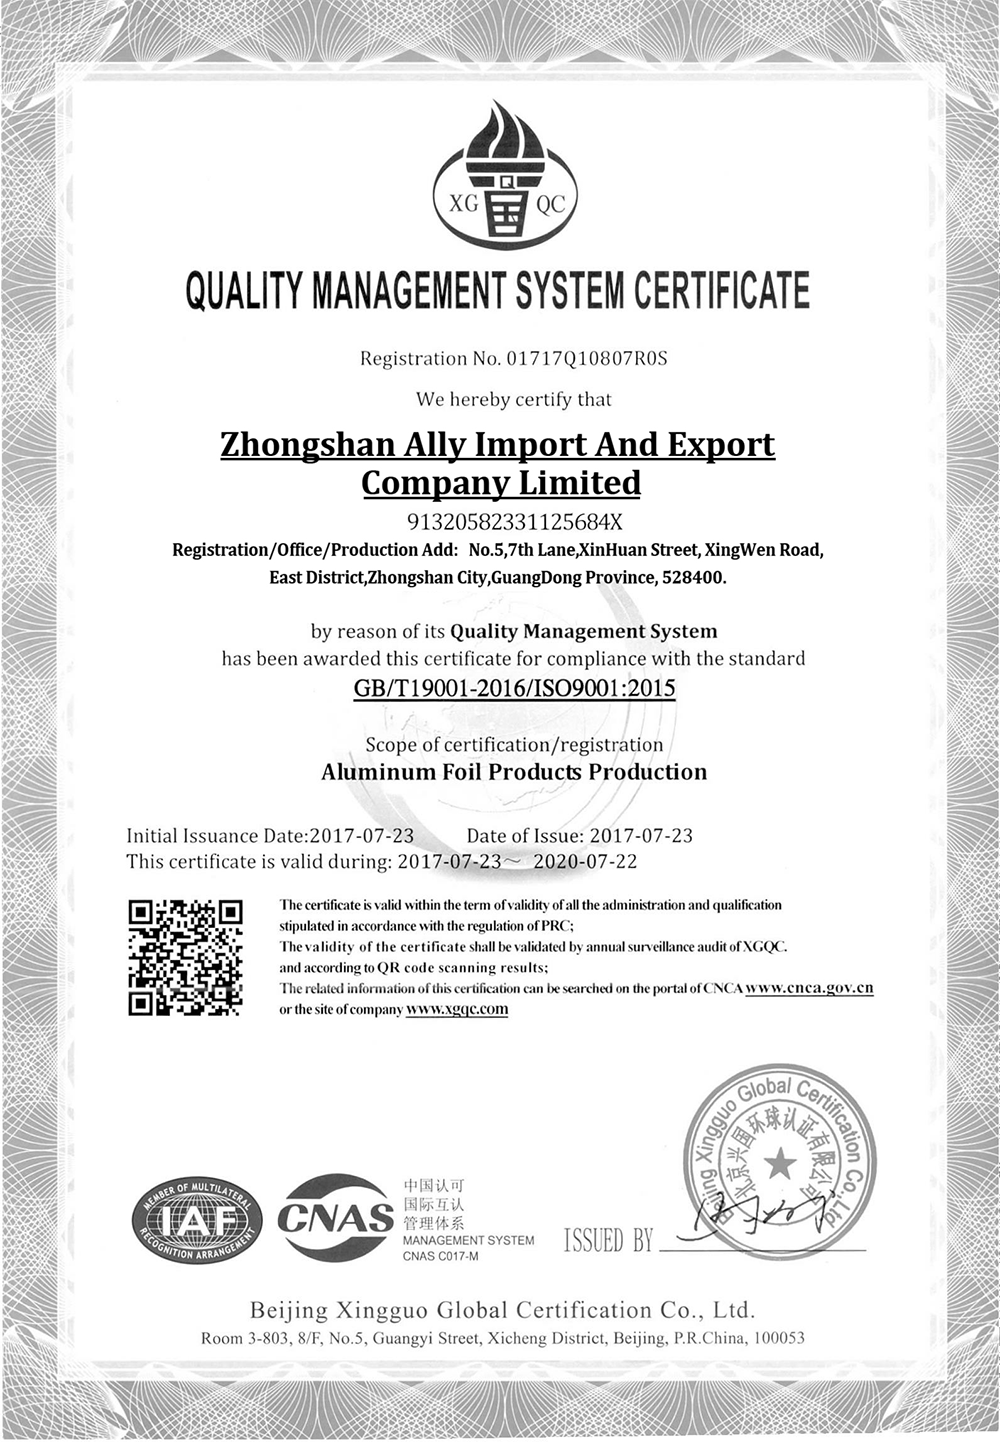 XGQQC QUALITY MANAGEMENT SYSTEM CERTIFICATE